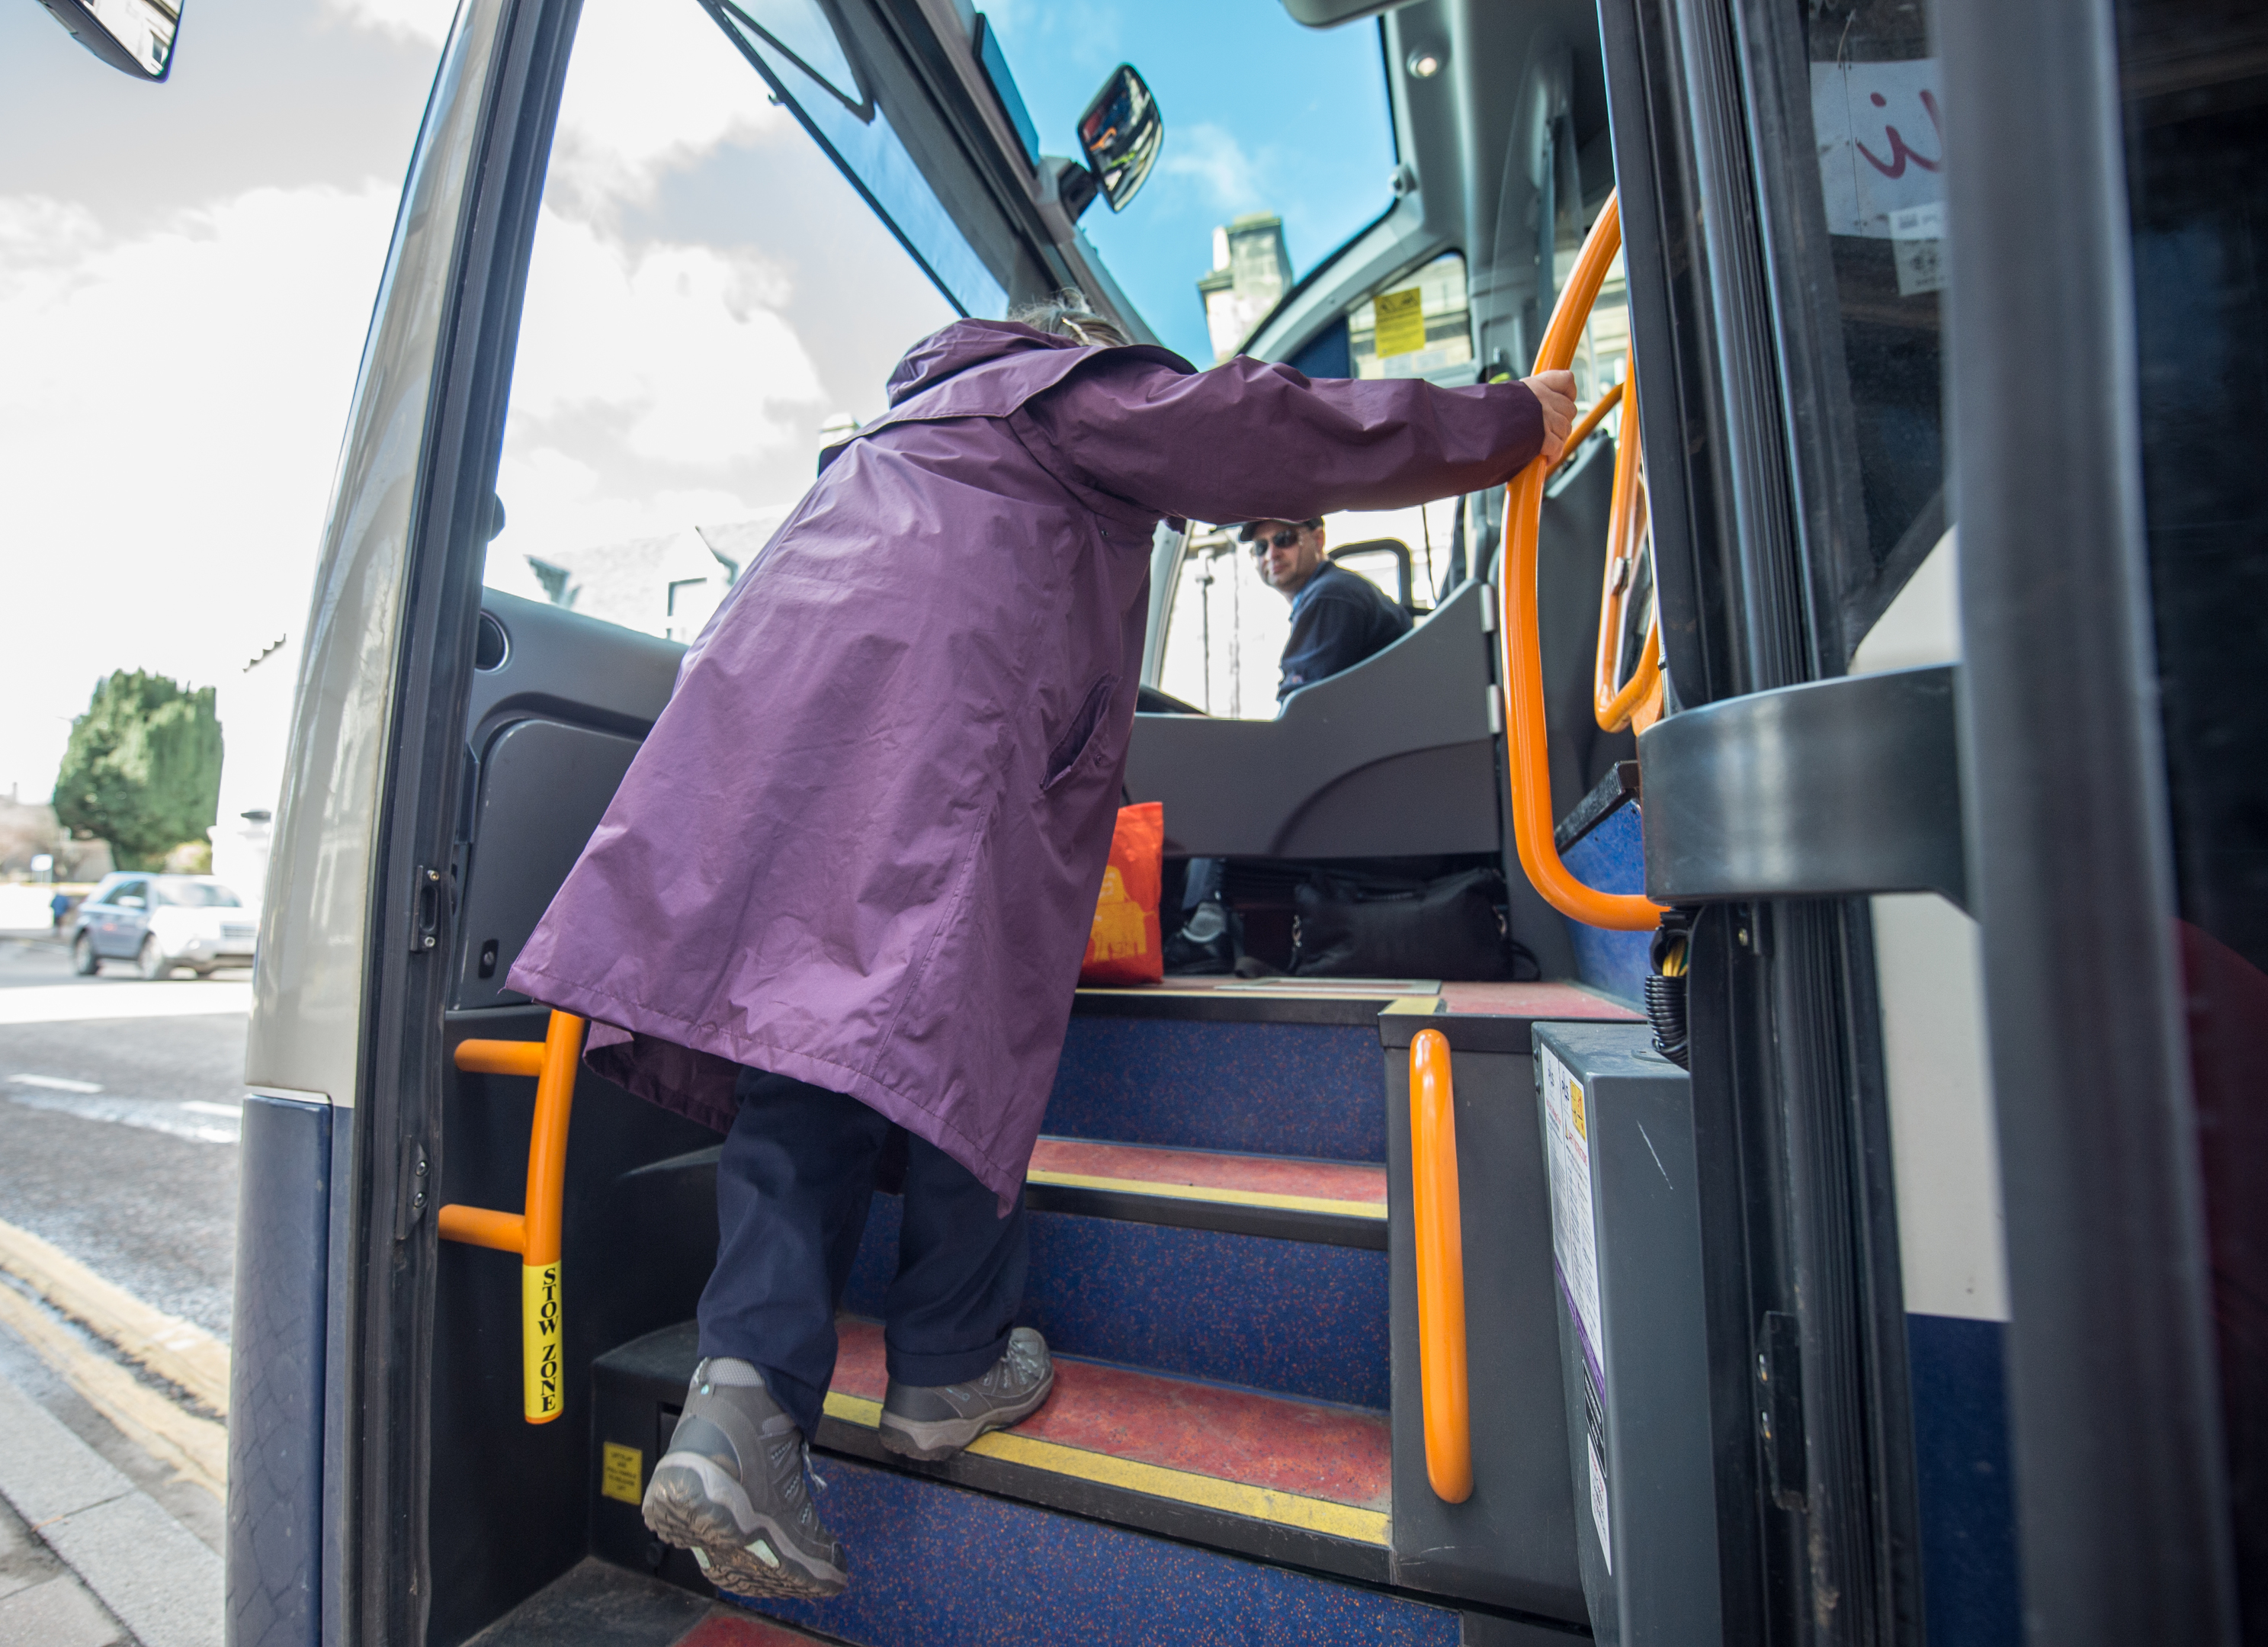 A passenger climbs the bus after boarding in Forres